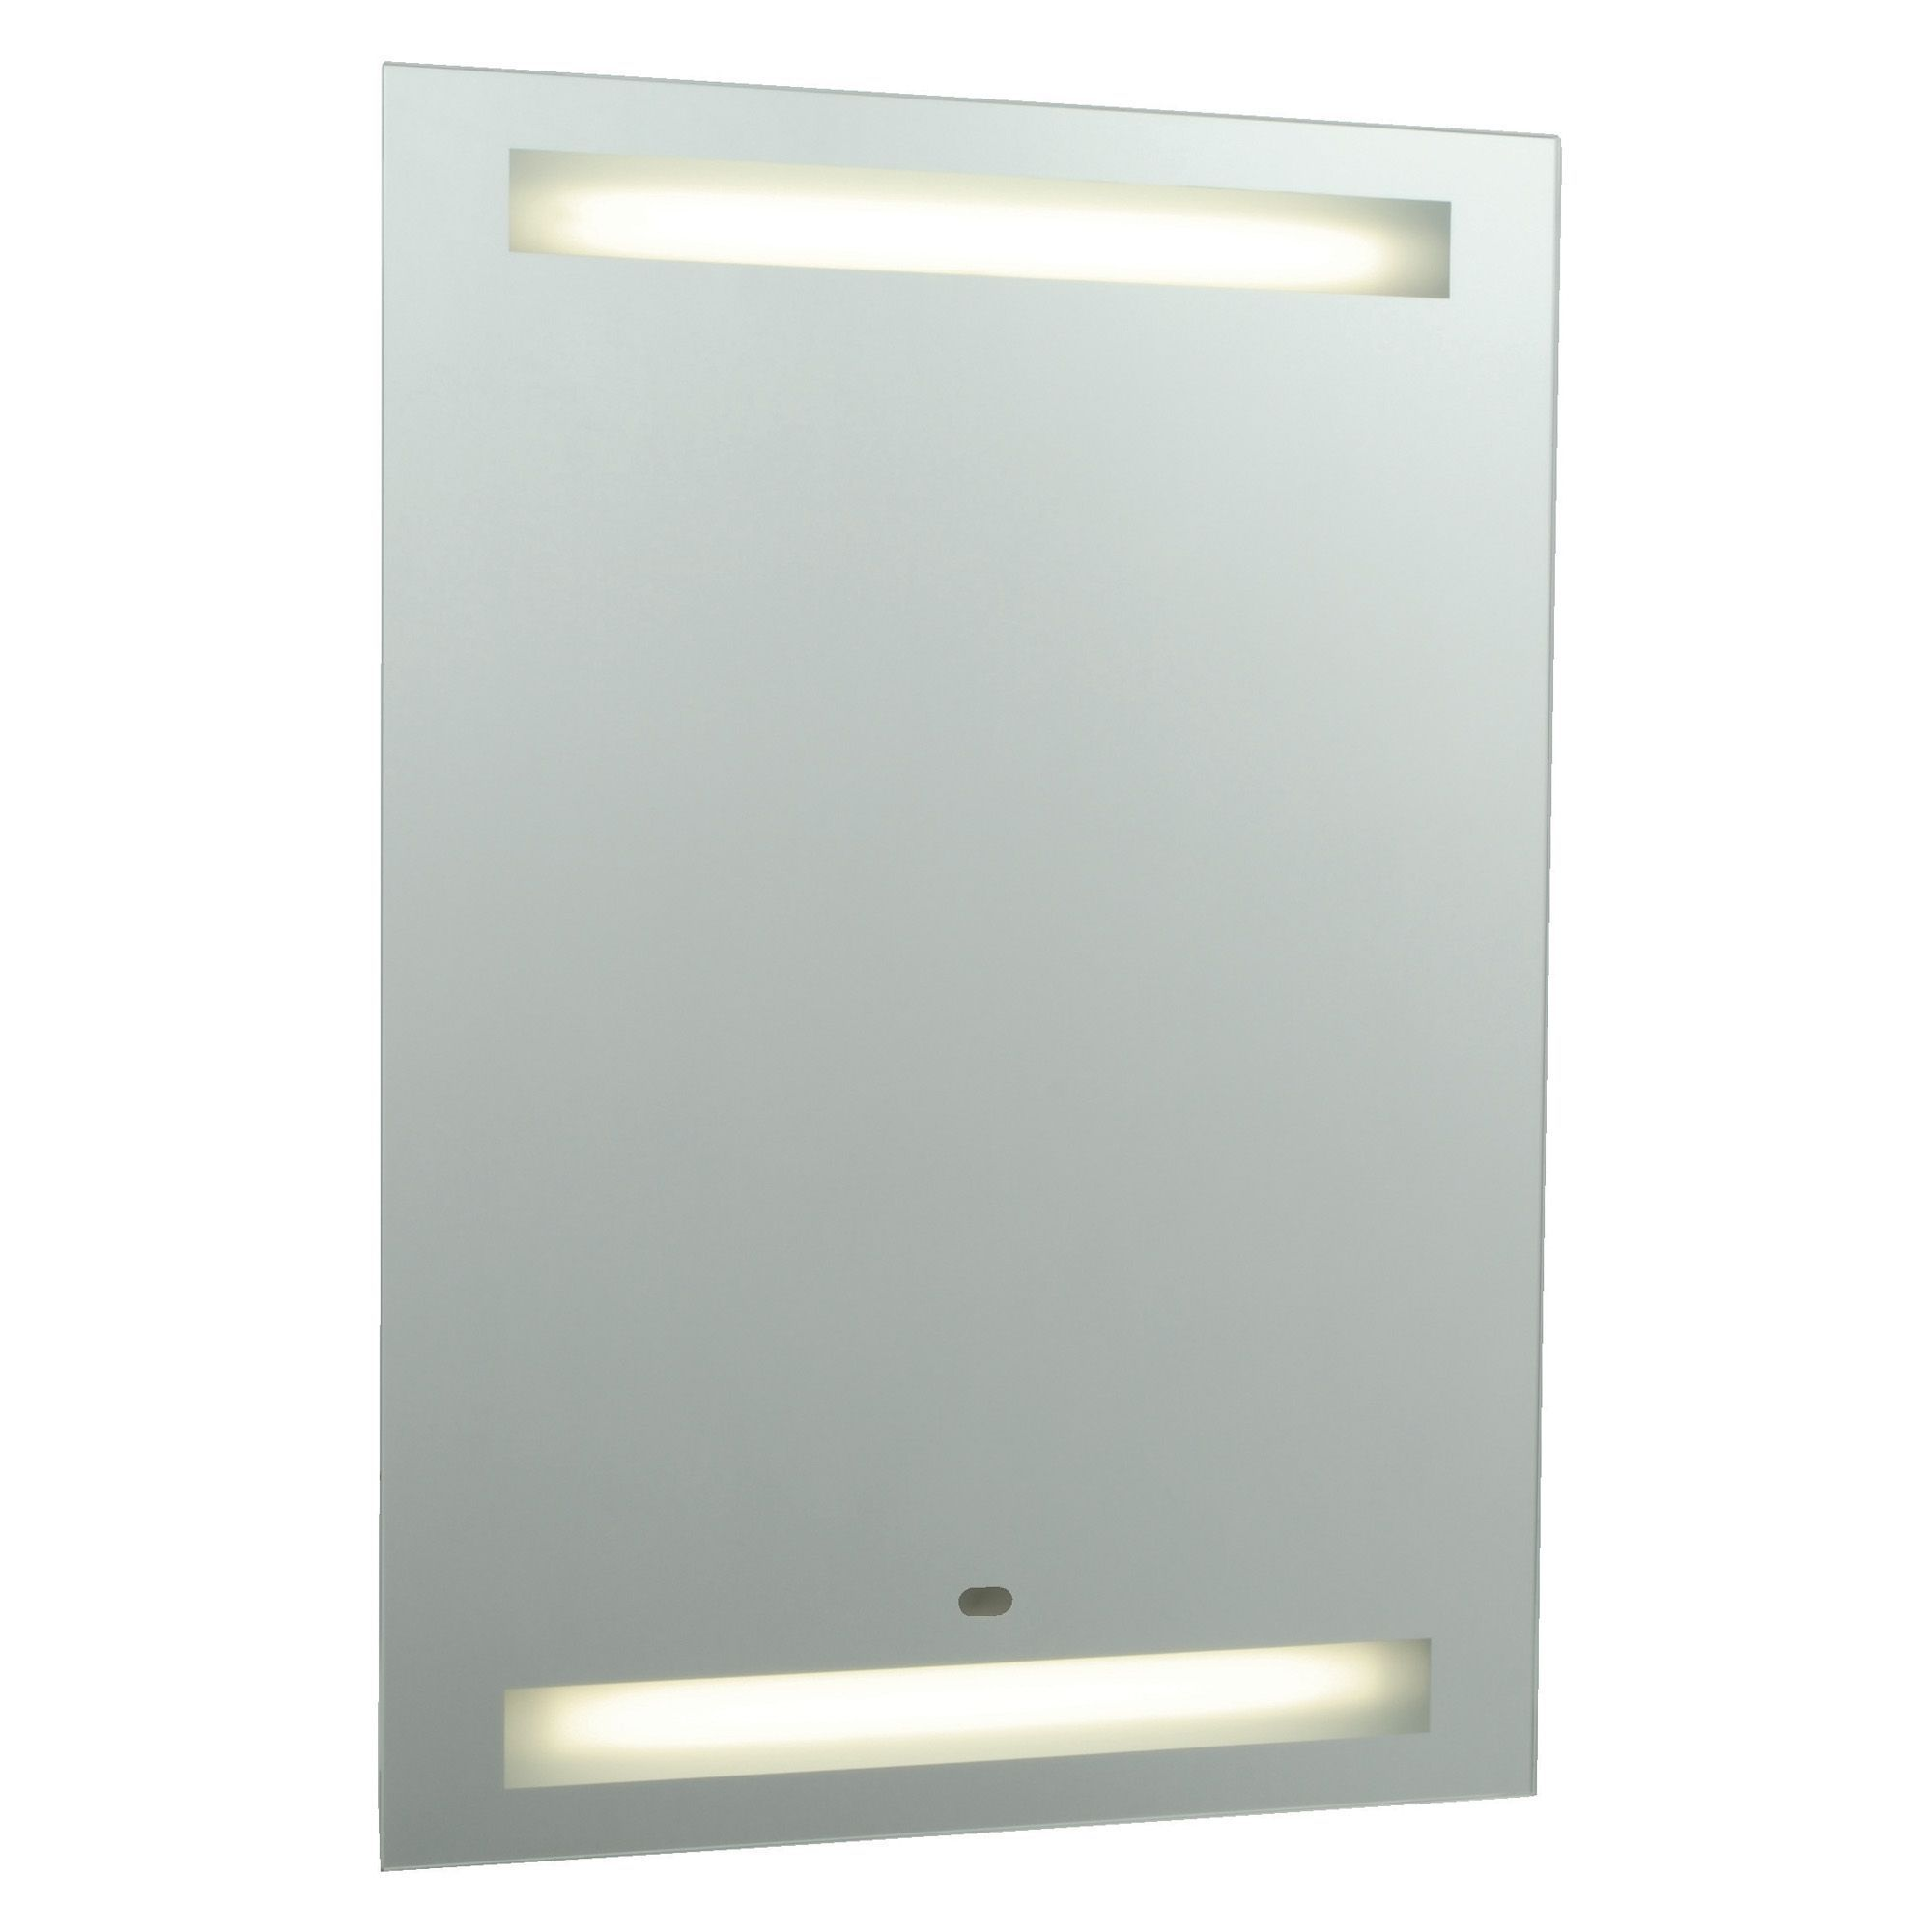 Cooke and lewis bathroom mirrors - Cooke Lewis Tamise Illuminated Rectangular Mirror W 600mm H 800mm Departments Diy At B Q